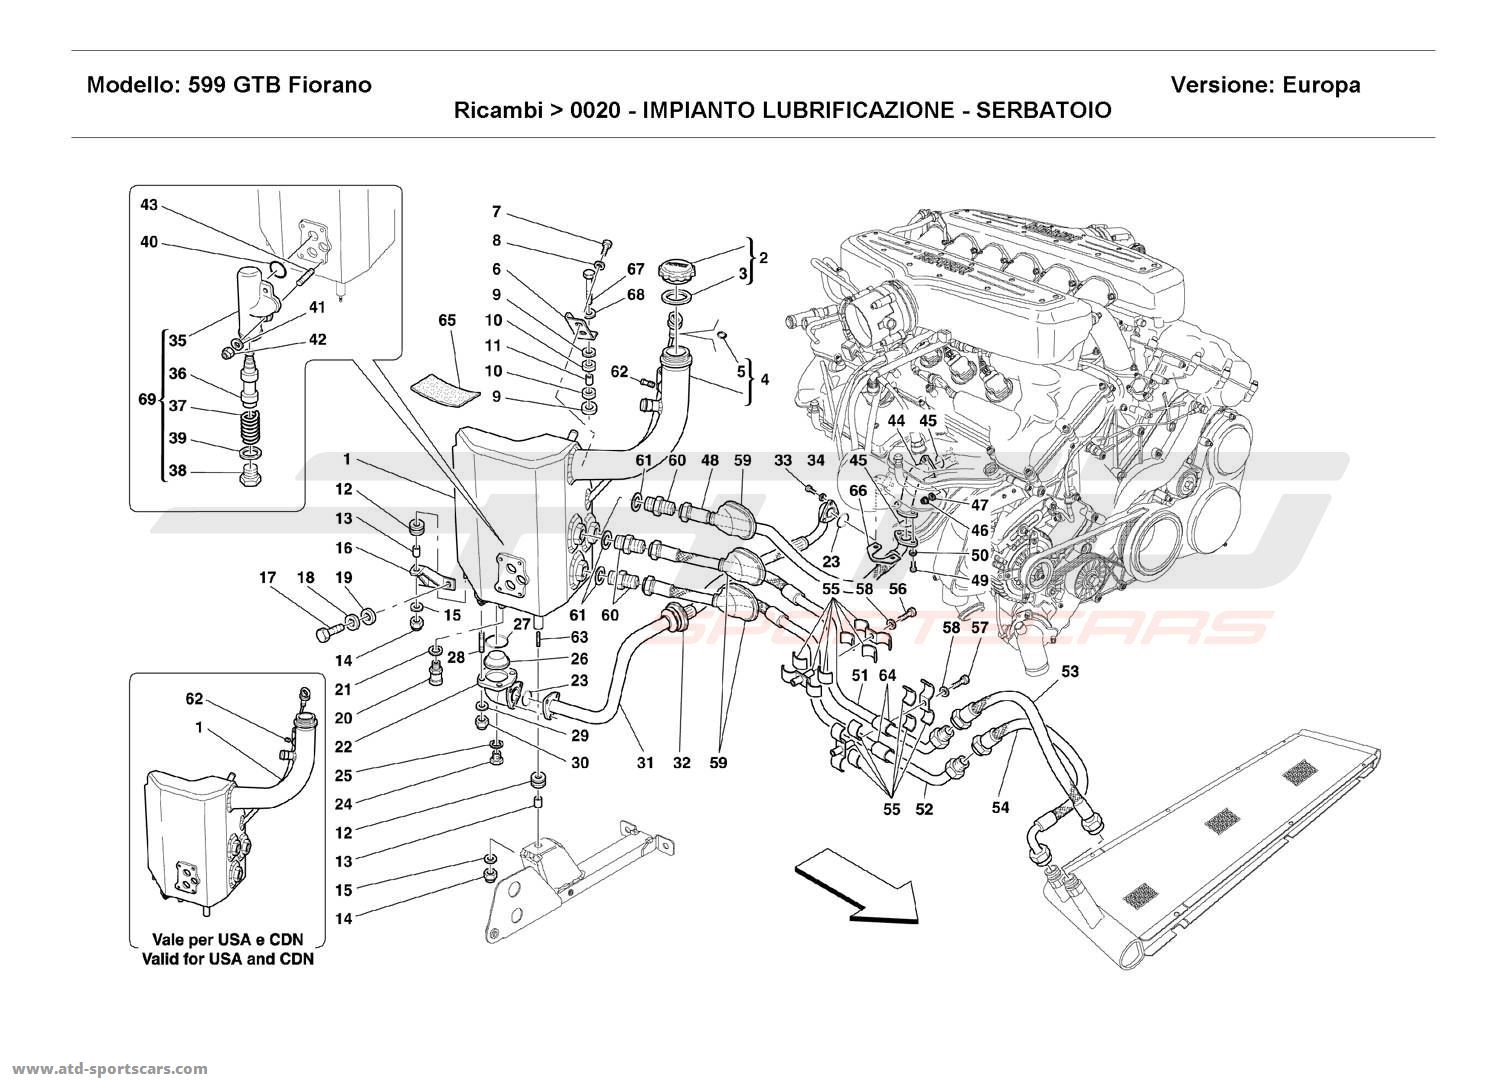 Ferrari 599 GTB Fiorano Engine parts at ATD-Sportscars